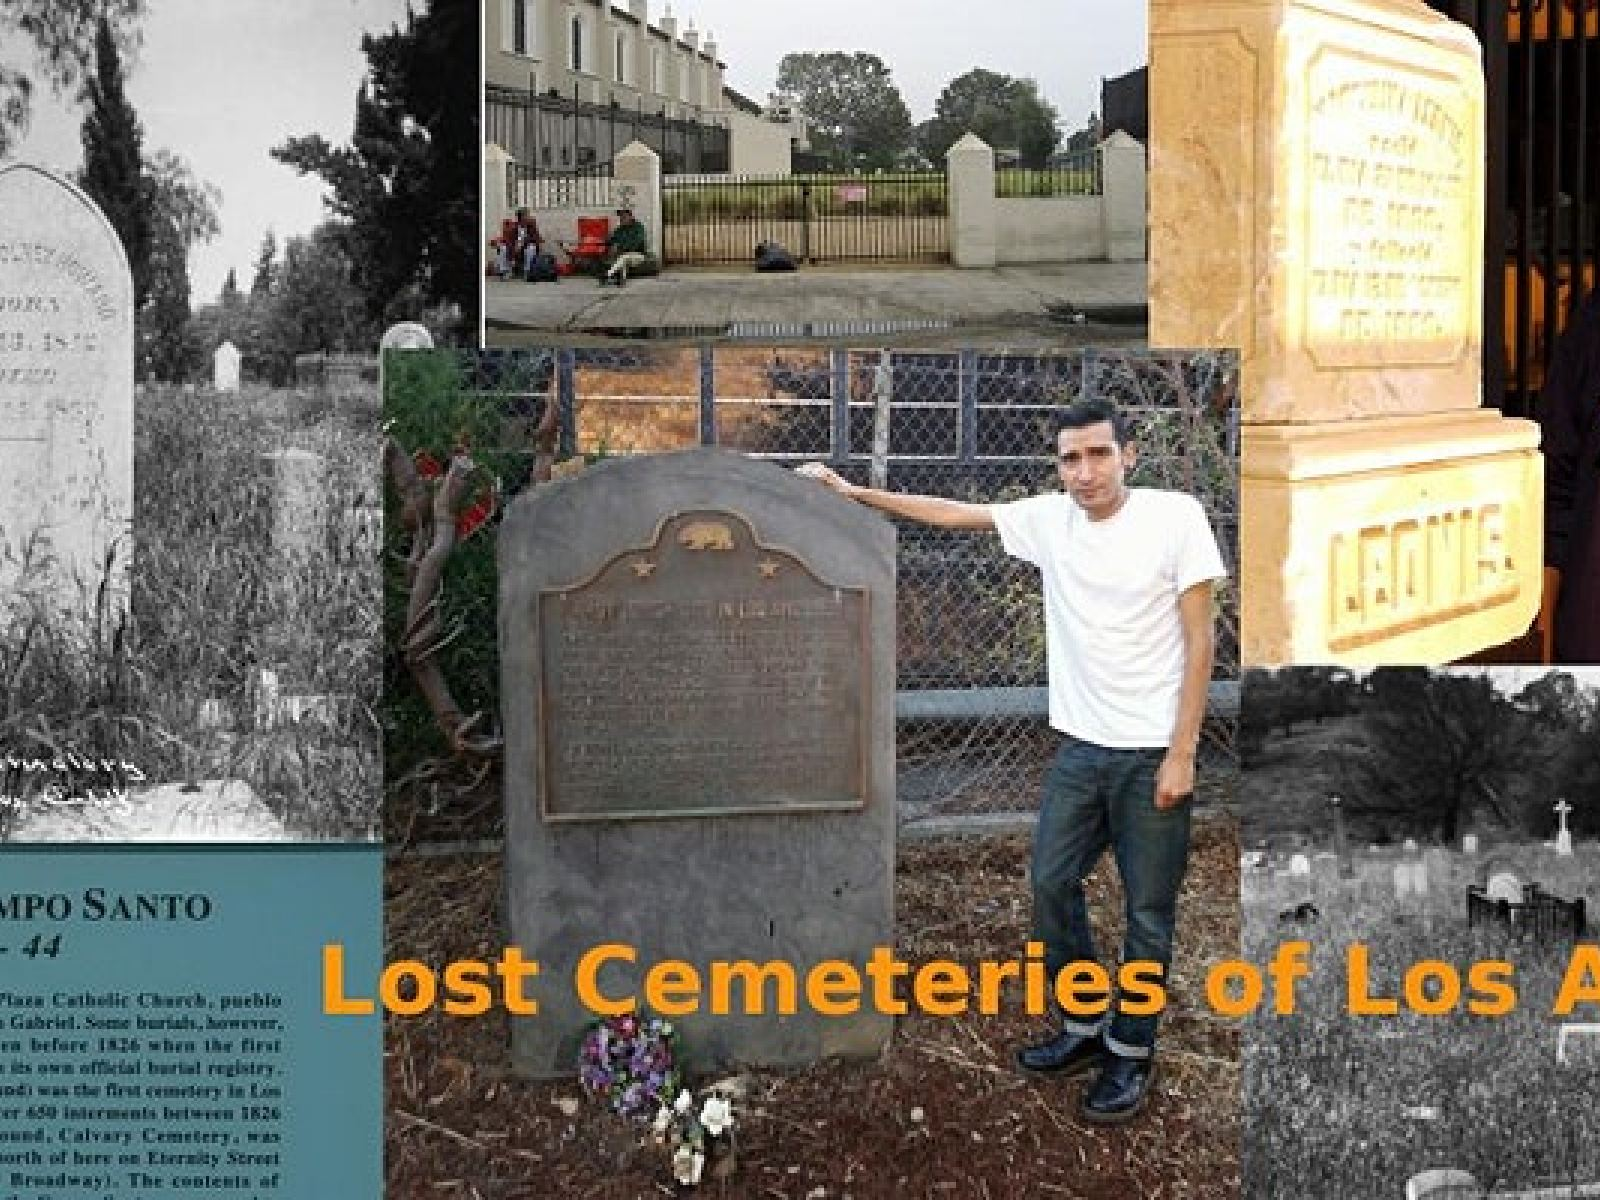 Main image for event titled Lost Cemeteries of Los Angeles (URBAN HIKE)